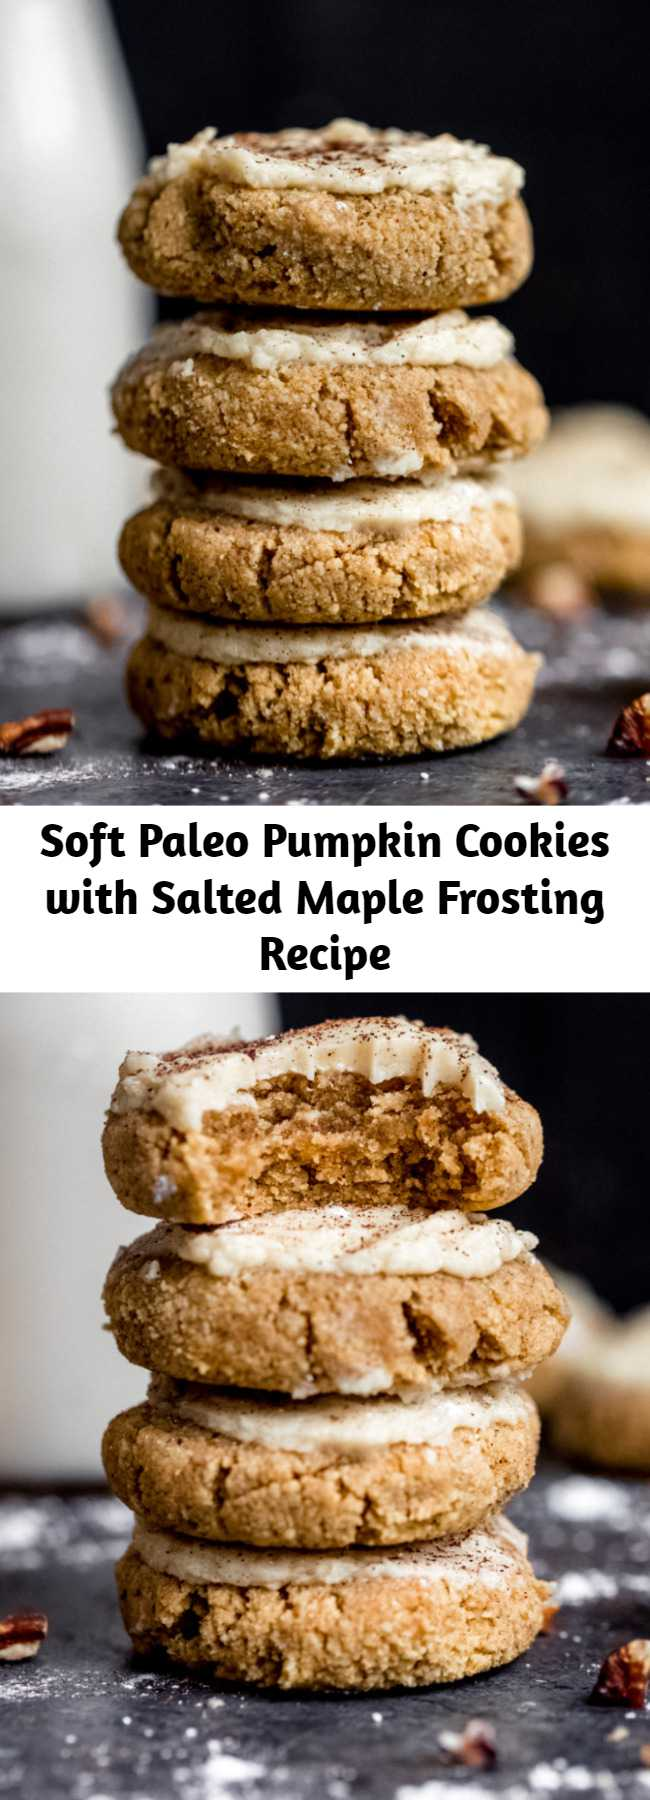 Soft Paleo Pumpkin Cookies with Salted Maple Frosting Recipe - These healthy soft pumpkin cookies with an addicting salted maple frosting are absolutely delicious! These melt-in-your-mouth cookies are both gluten free and grain free and taste like a slice of your favorite pumpkin pie! #cookies #pumpkin #pumpkinrecipe #healthydessert #glutenfree #baking #grainfree